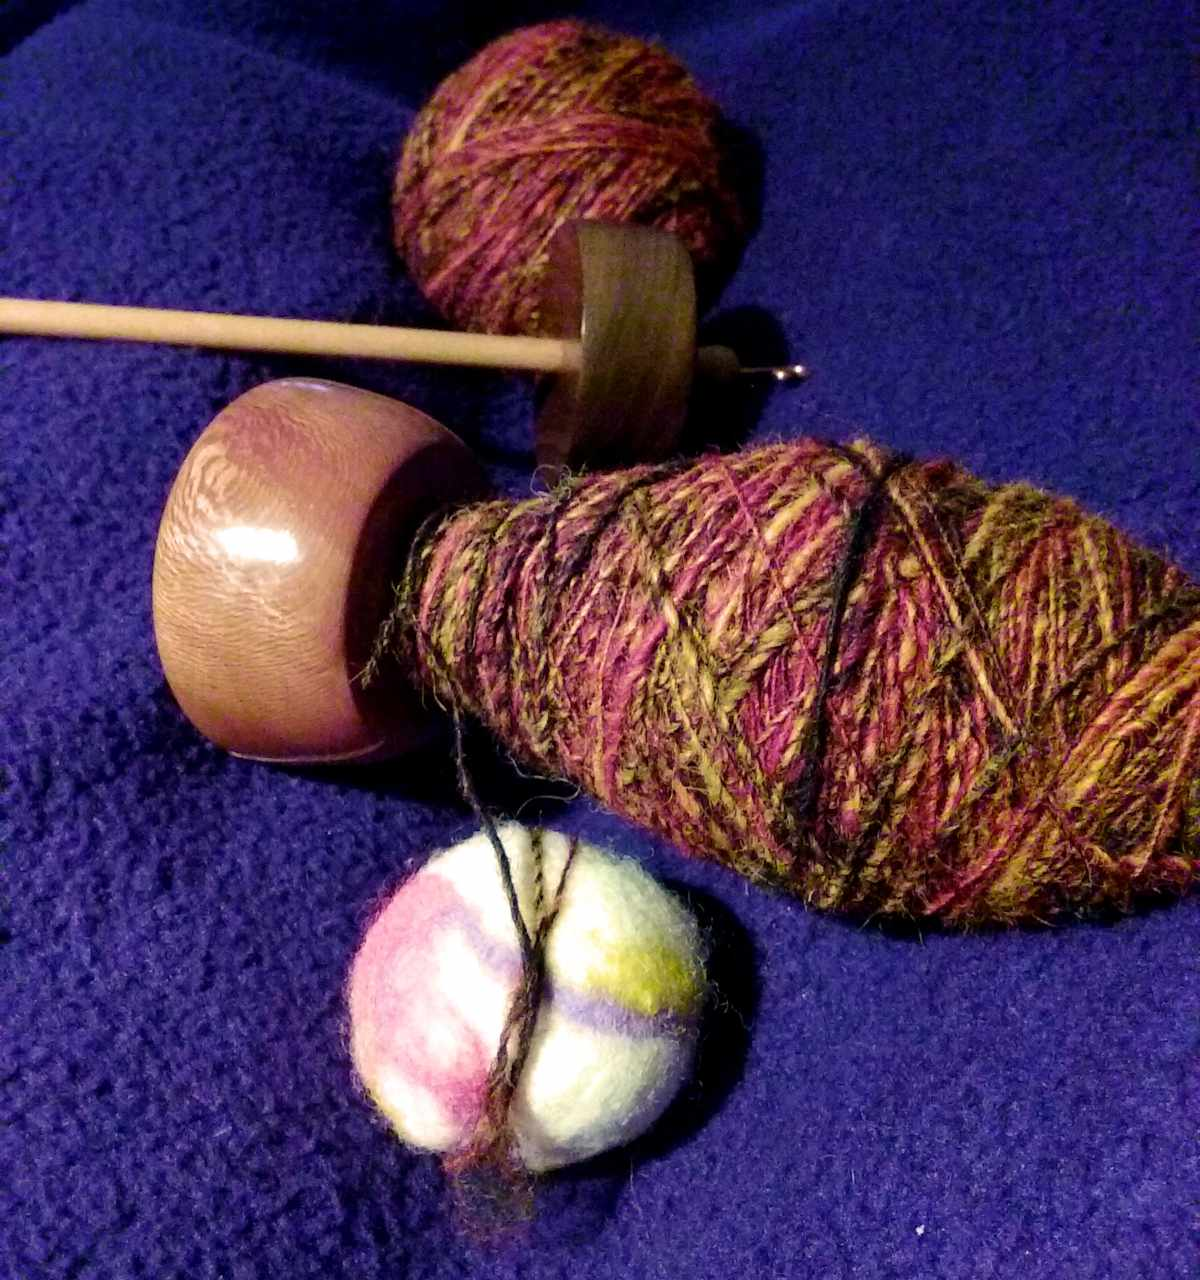 From right a fist sized ball of singles yarn in red yellow and black, high whorl suspended spindle empty lying upside down with a black walnut whorl and a sycamore shaft;  Top whorl drop spindle in Sycamore on Maple with a full oval shaped cop of singles yarn; small felt ball with the end of the yarn from the spindle wrapped around it twice.  all the creative work of Cynthia D. Haney